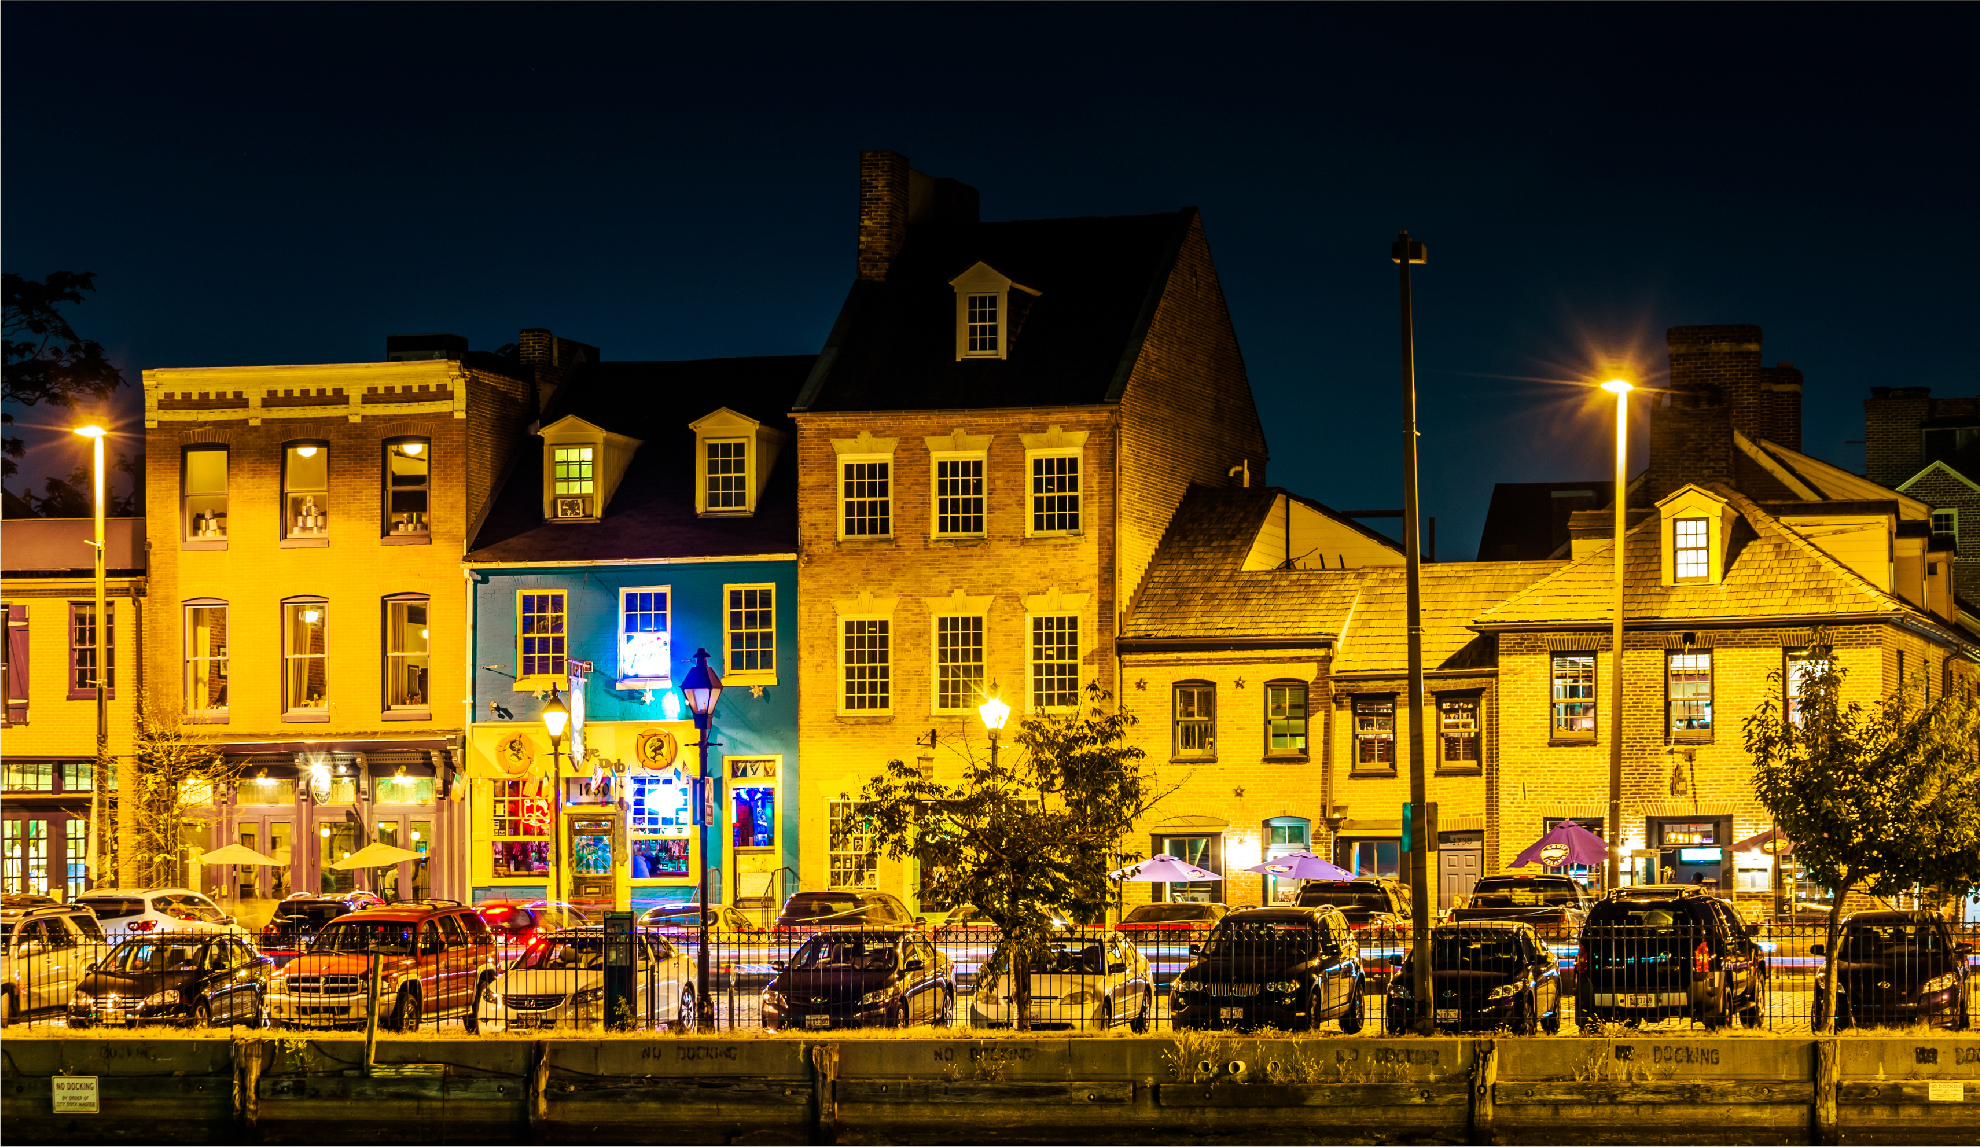 fells point street at night in baltimore